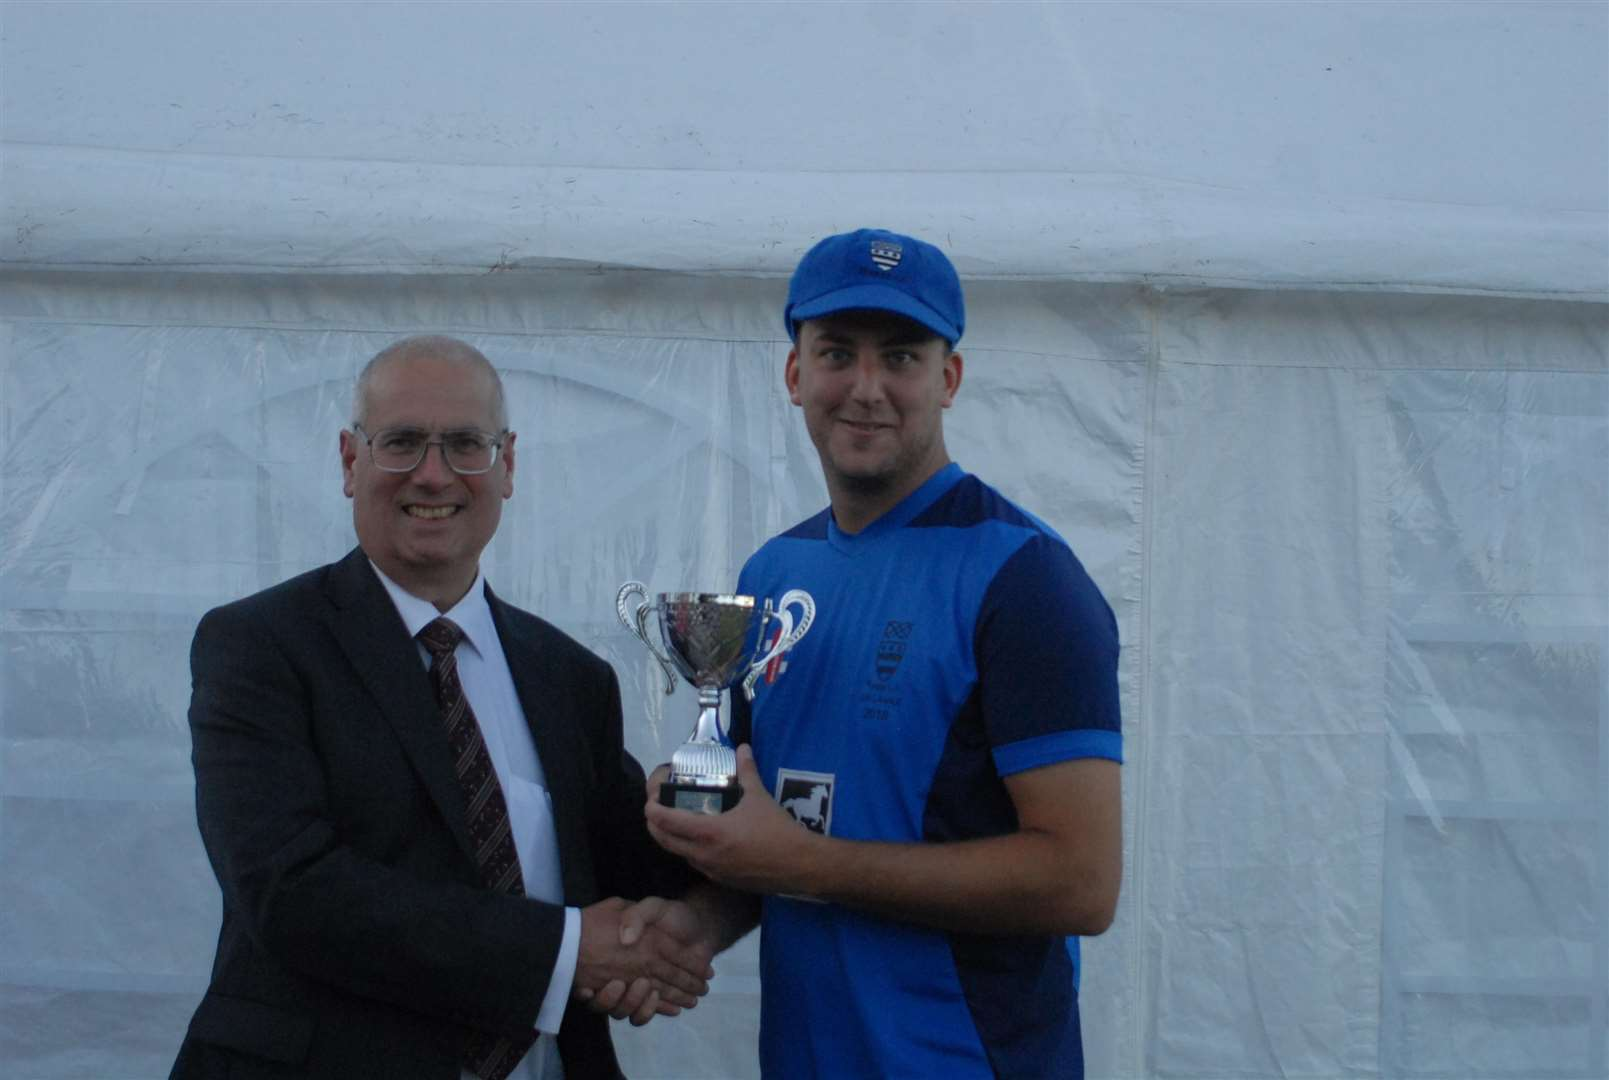 Bourne skipper Jack Berry receives the trophy from Eric Wagner, grandson of Dr Jaidka. (2771956)